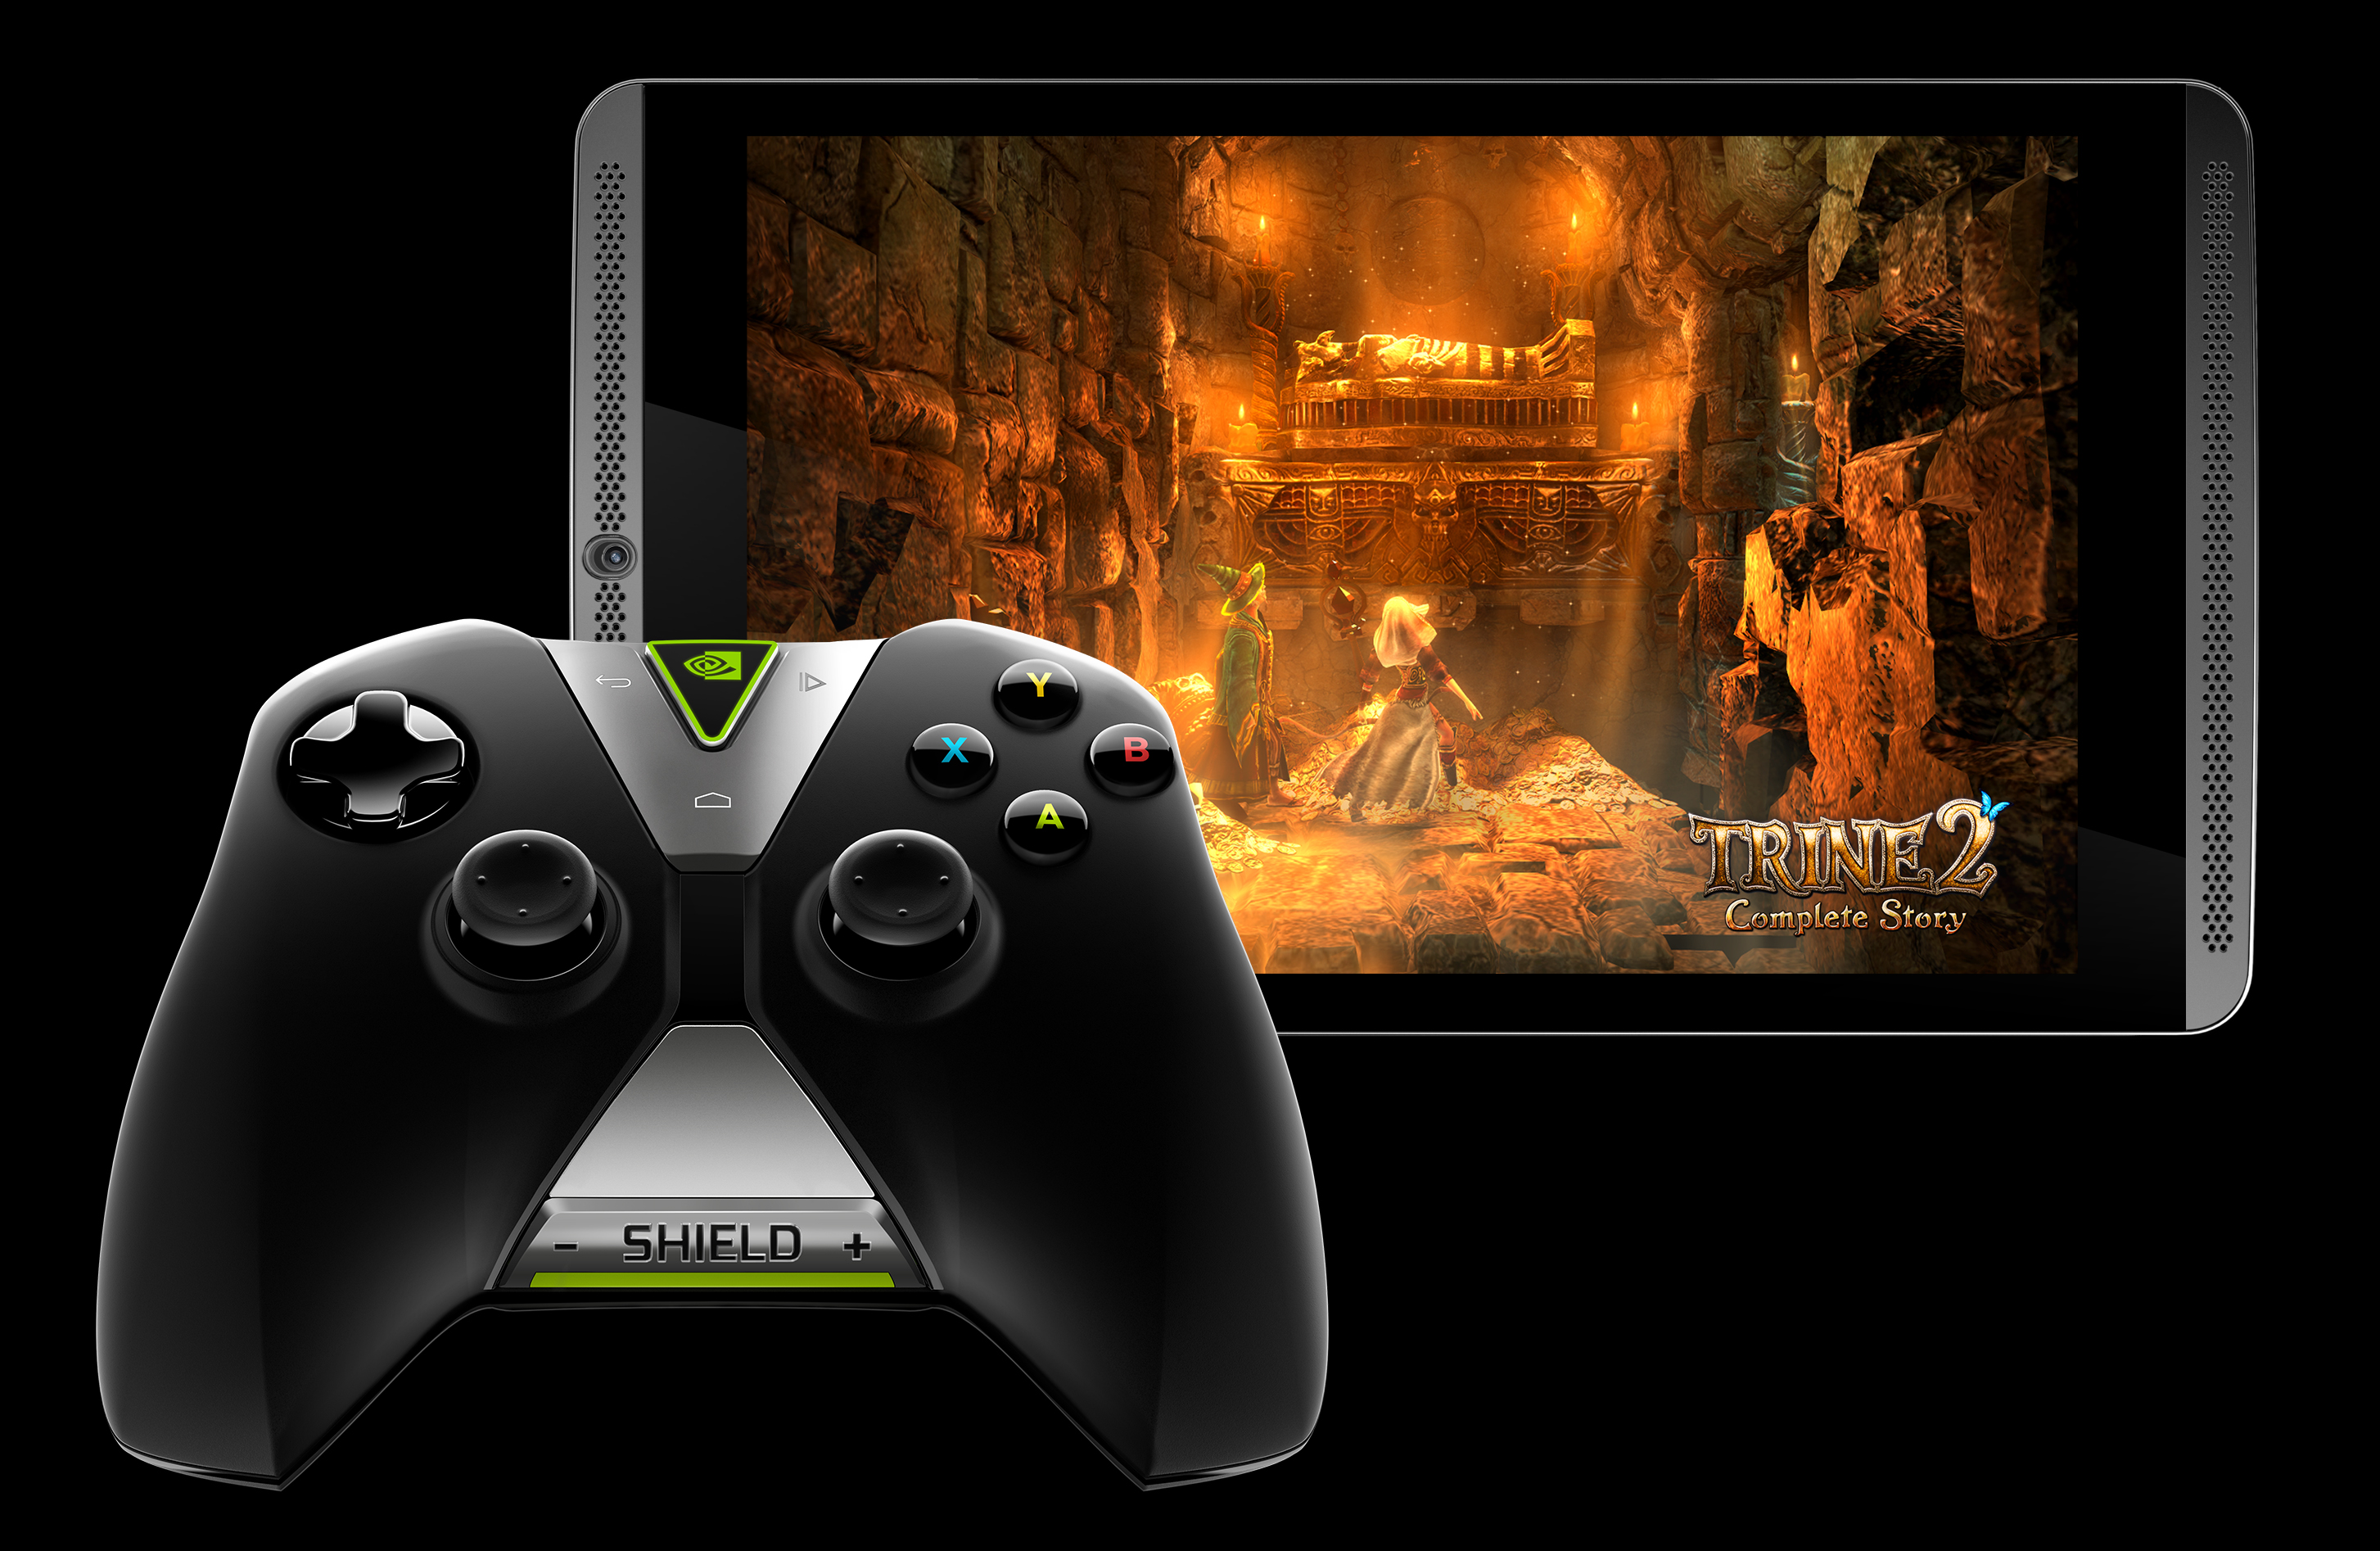 NVIDIA Launches World's Most Advanced Tablet Built for Gamers